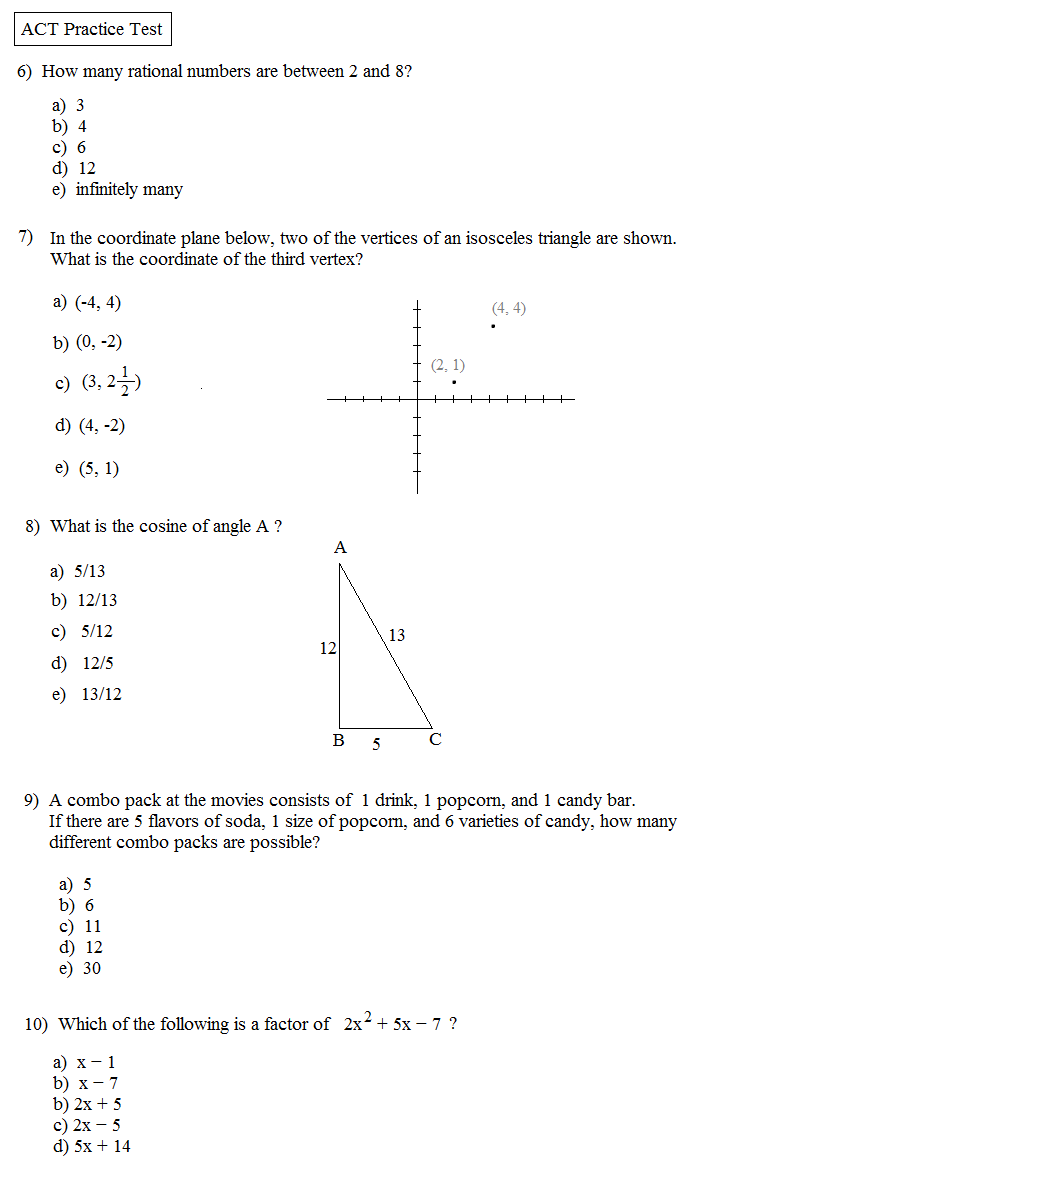 Worksheets Act Math Worksheets printables act math worksheets joomsimple thousands of printable practice test pdf kangaroo sample questions level 2